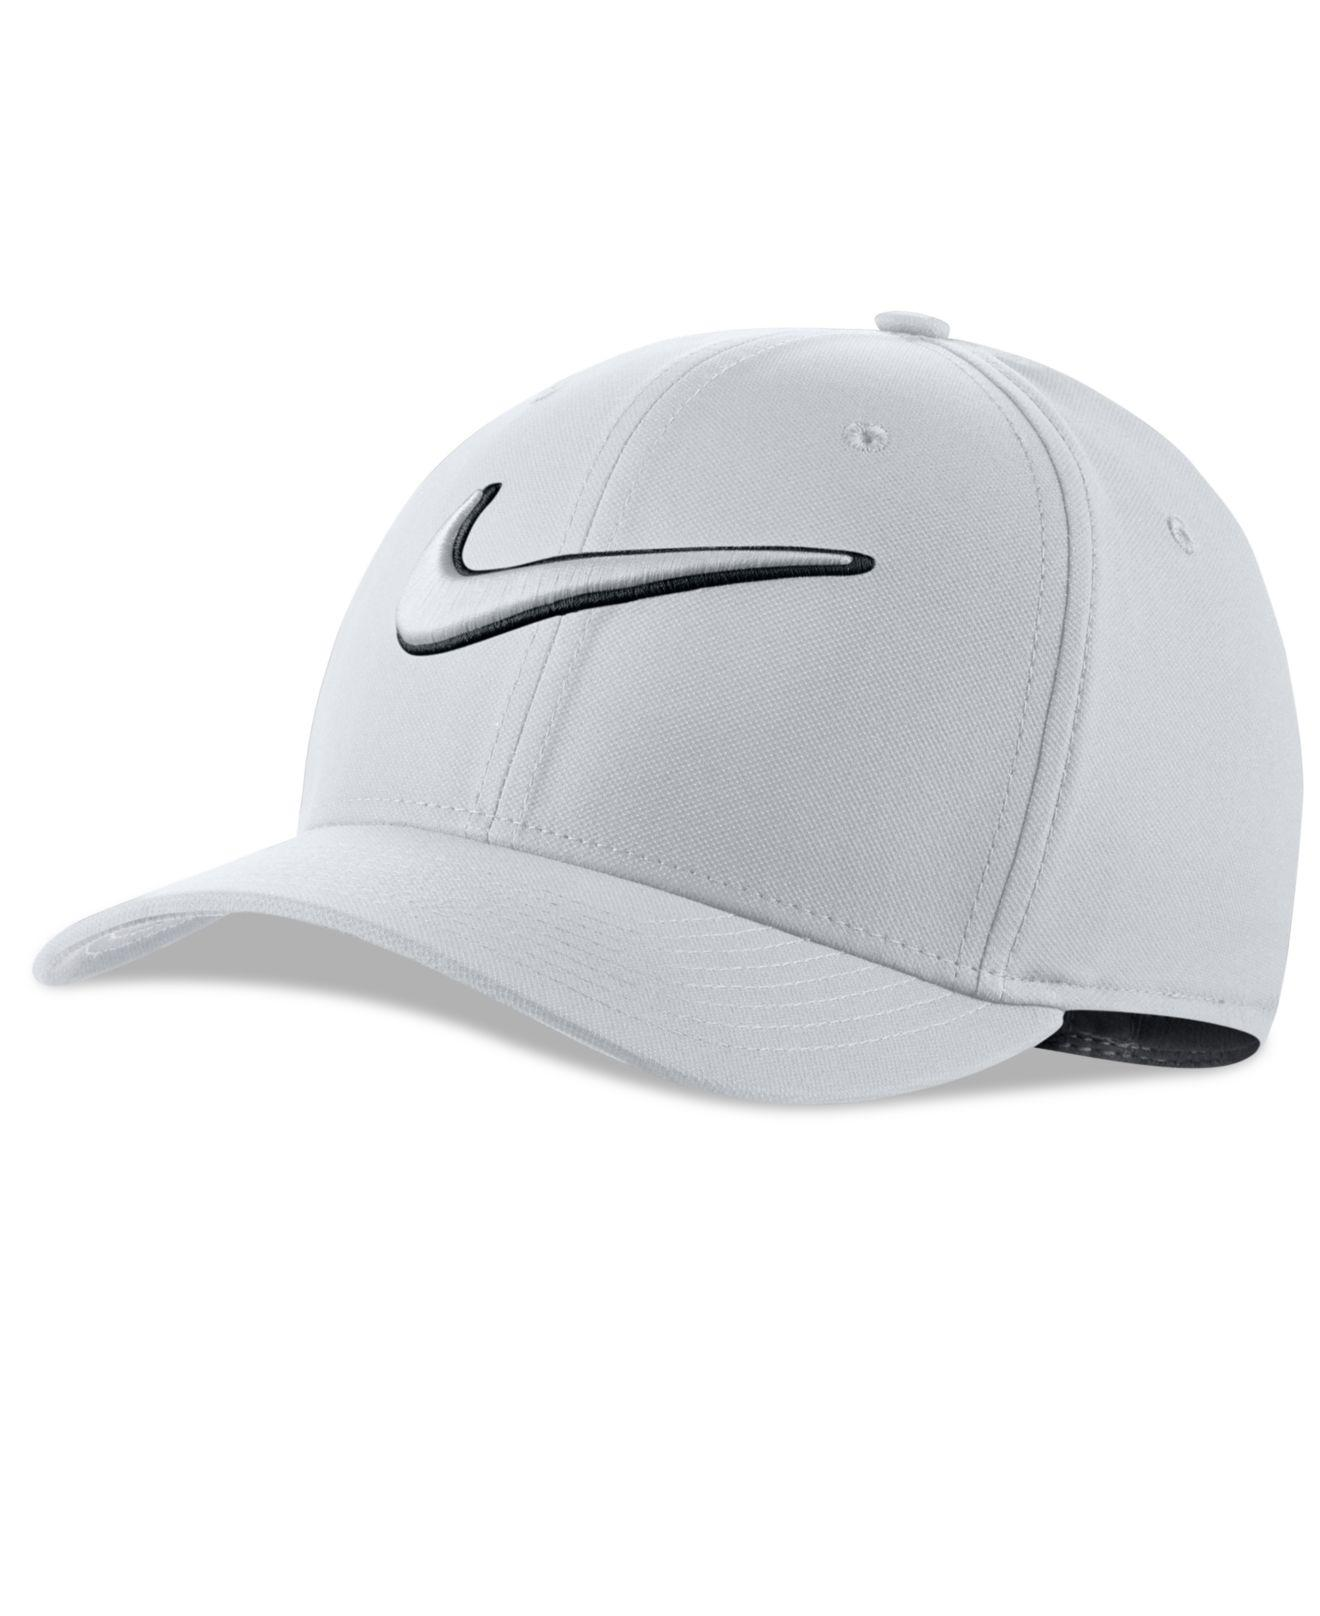 d96889b6c Nike White Men's Classic99 Dri-fit Golf Hat for men